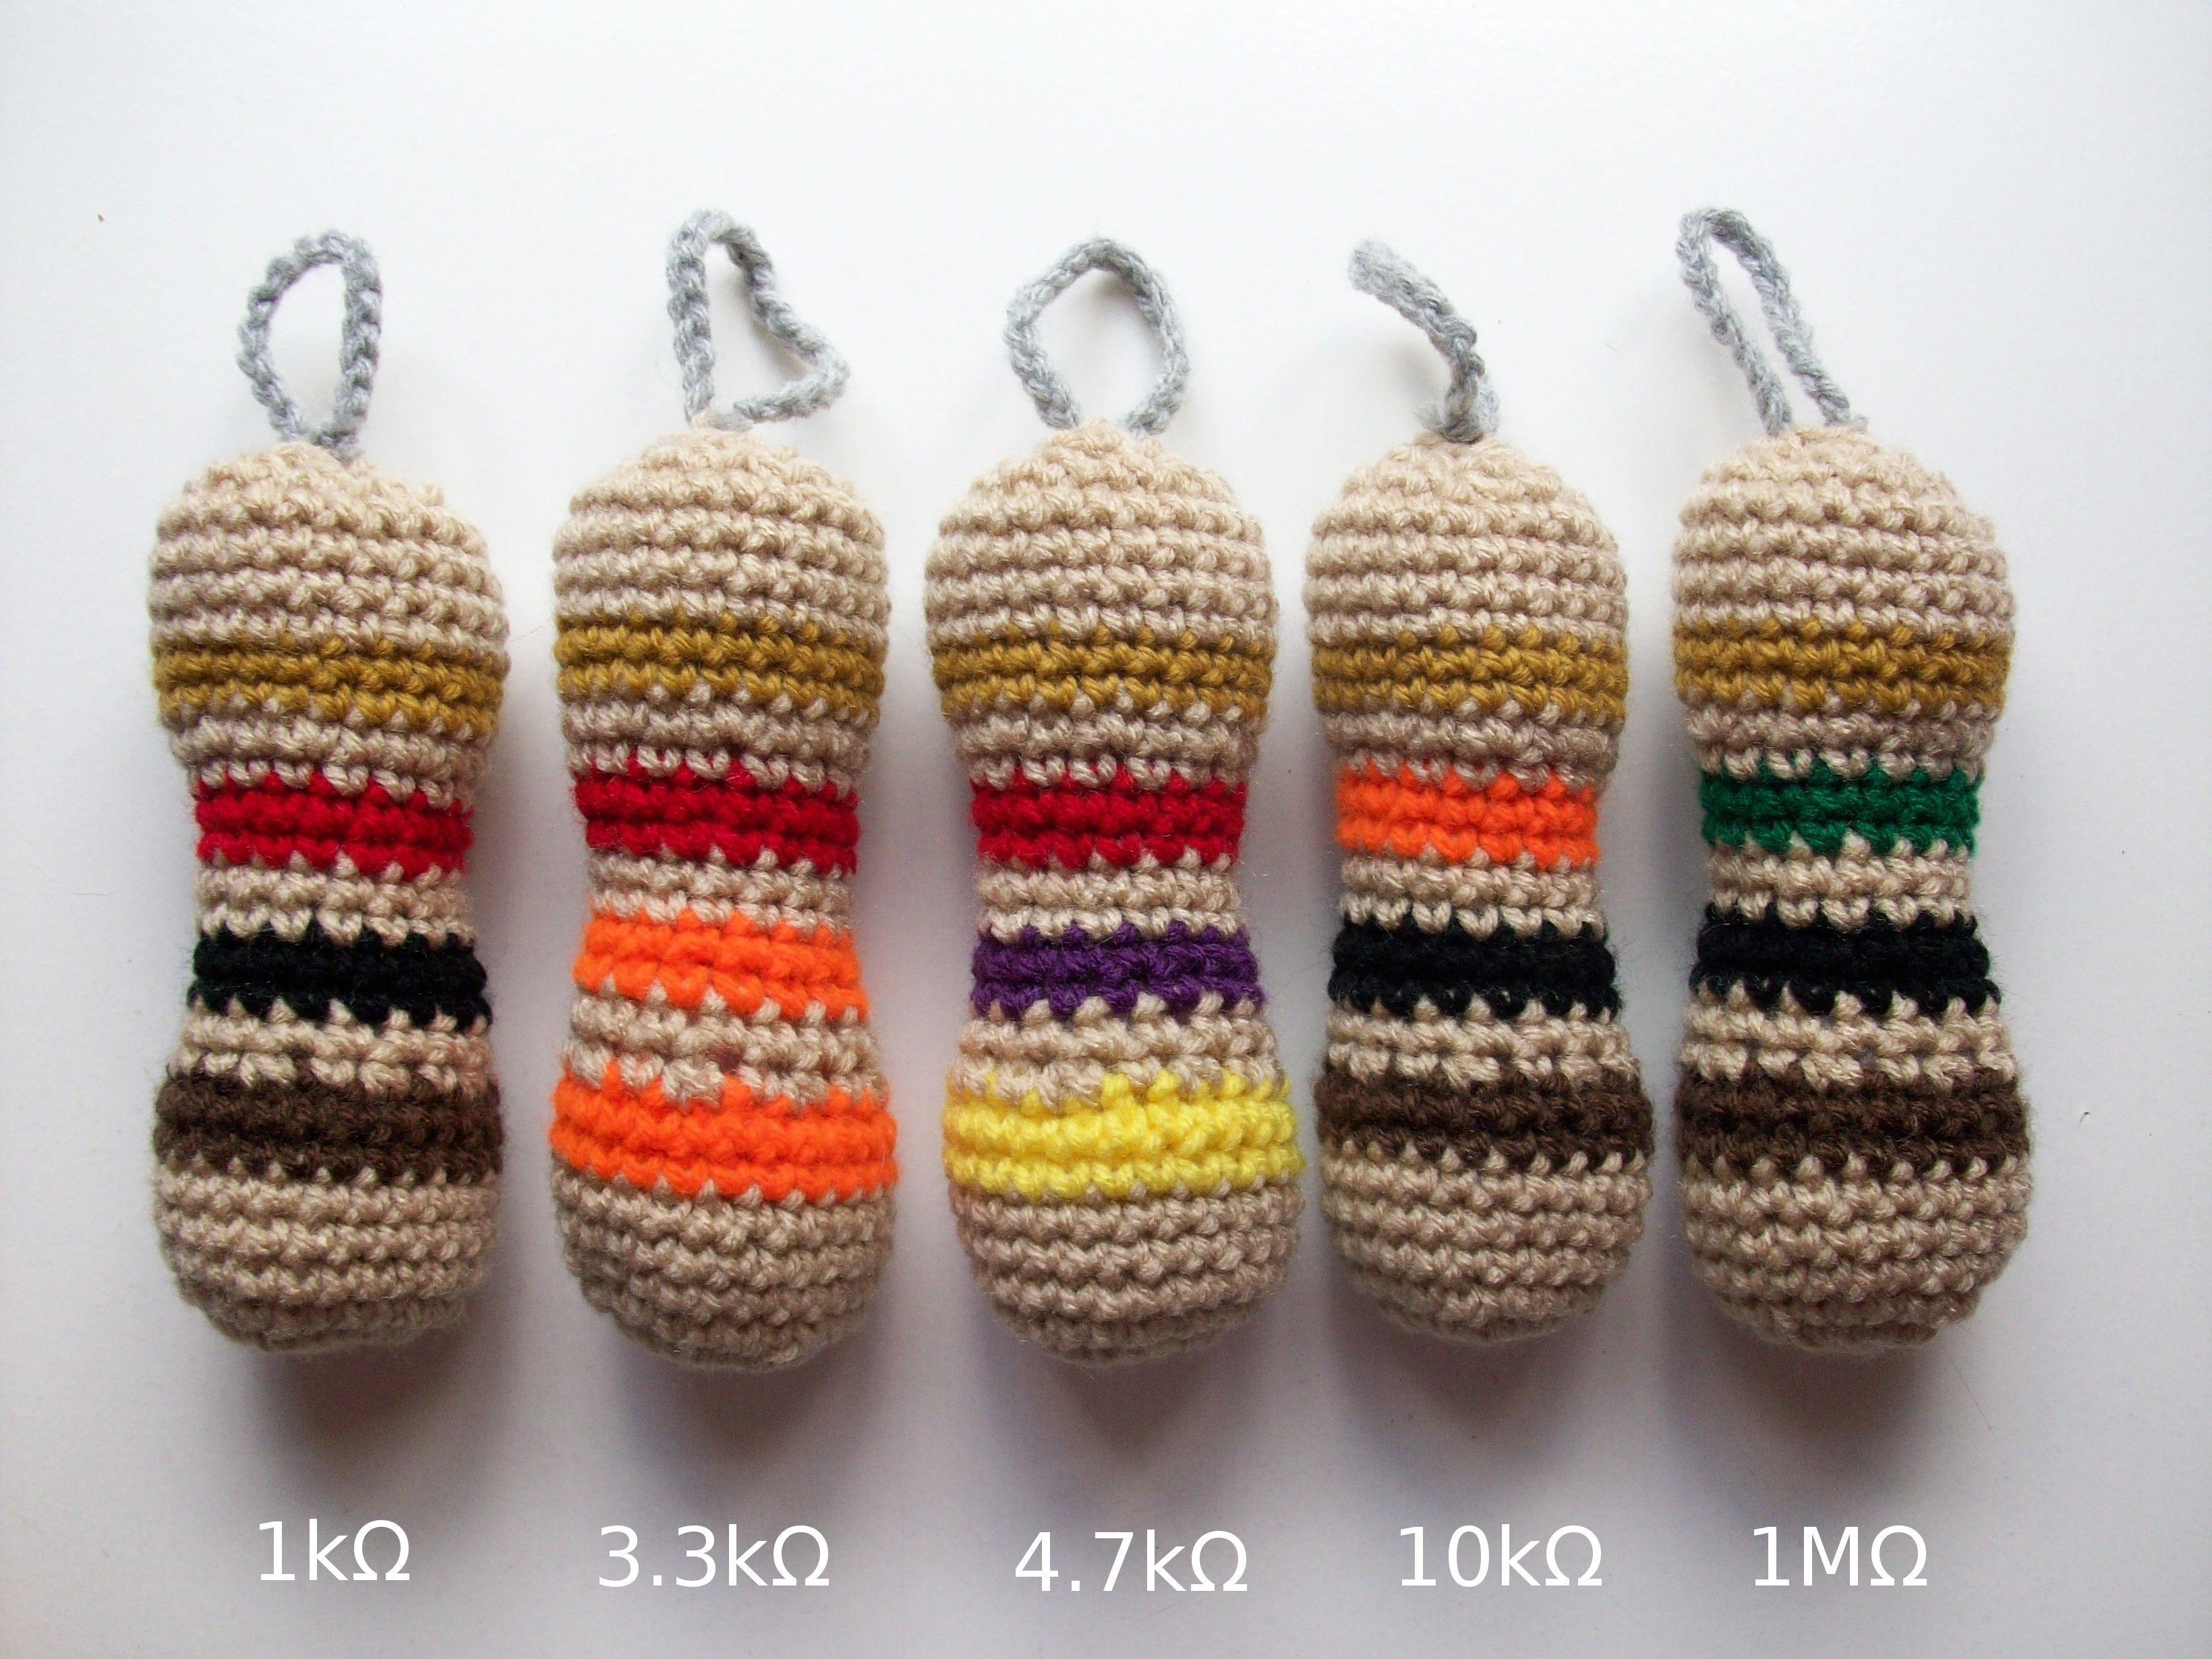 You Can Make Anything Into Adorable Amigurumi - Check Out These Colorful Resistors!